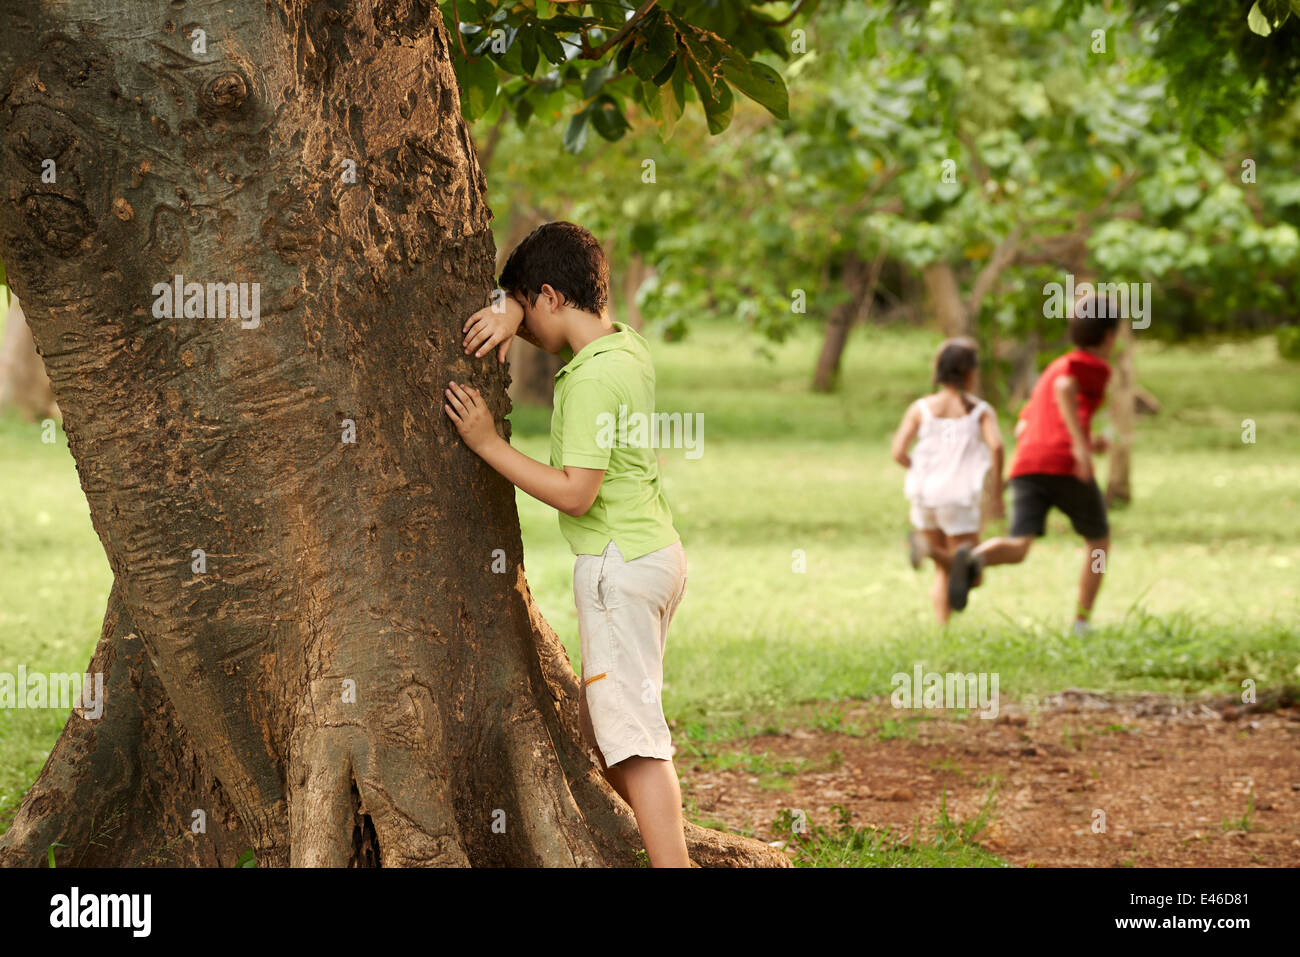 young boys and girls playing hide and seek in park, with kid counting leaning on tree - Stock Image